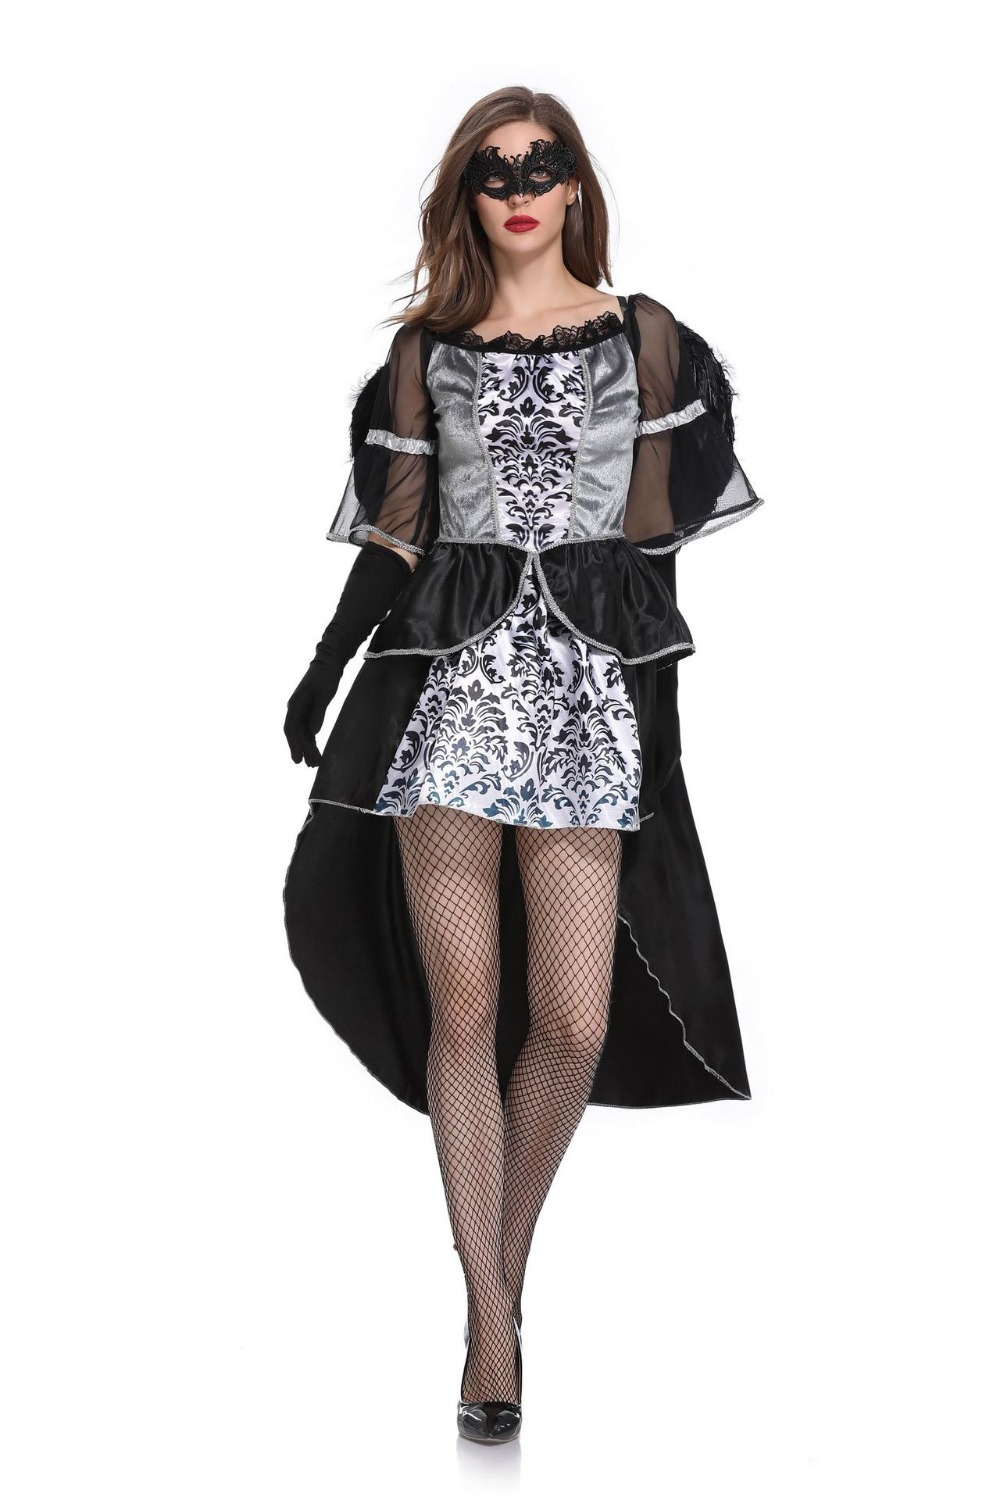 Sexy Lace Iregular Dress Ghost Bride Evil Angel Cosplay Costume Halloween Costumes For Women In Holidays Costumes From Novelty Special Use On